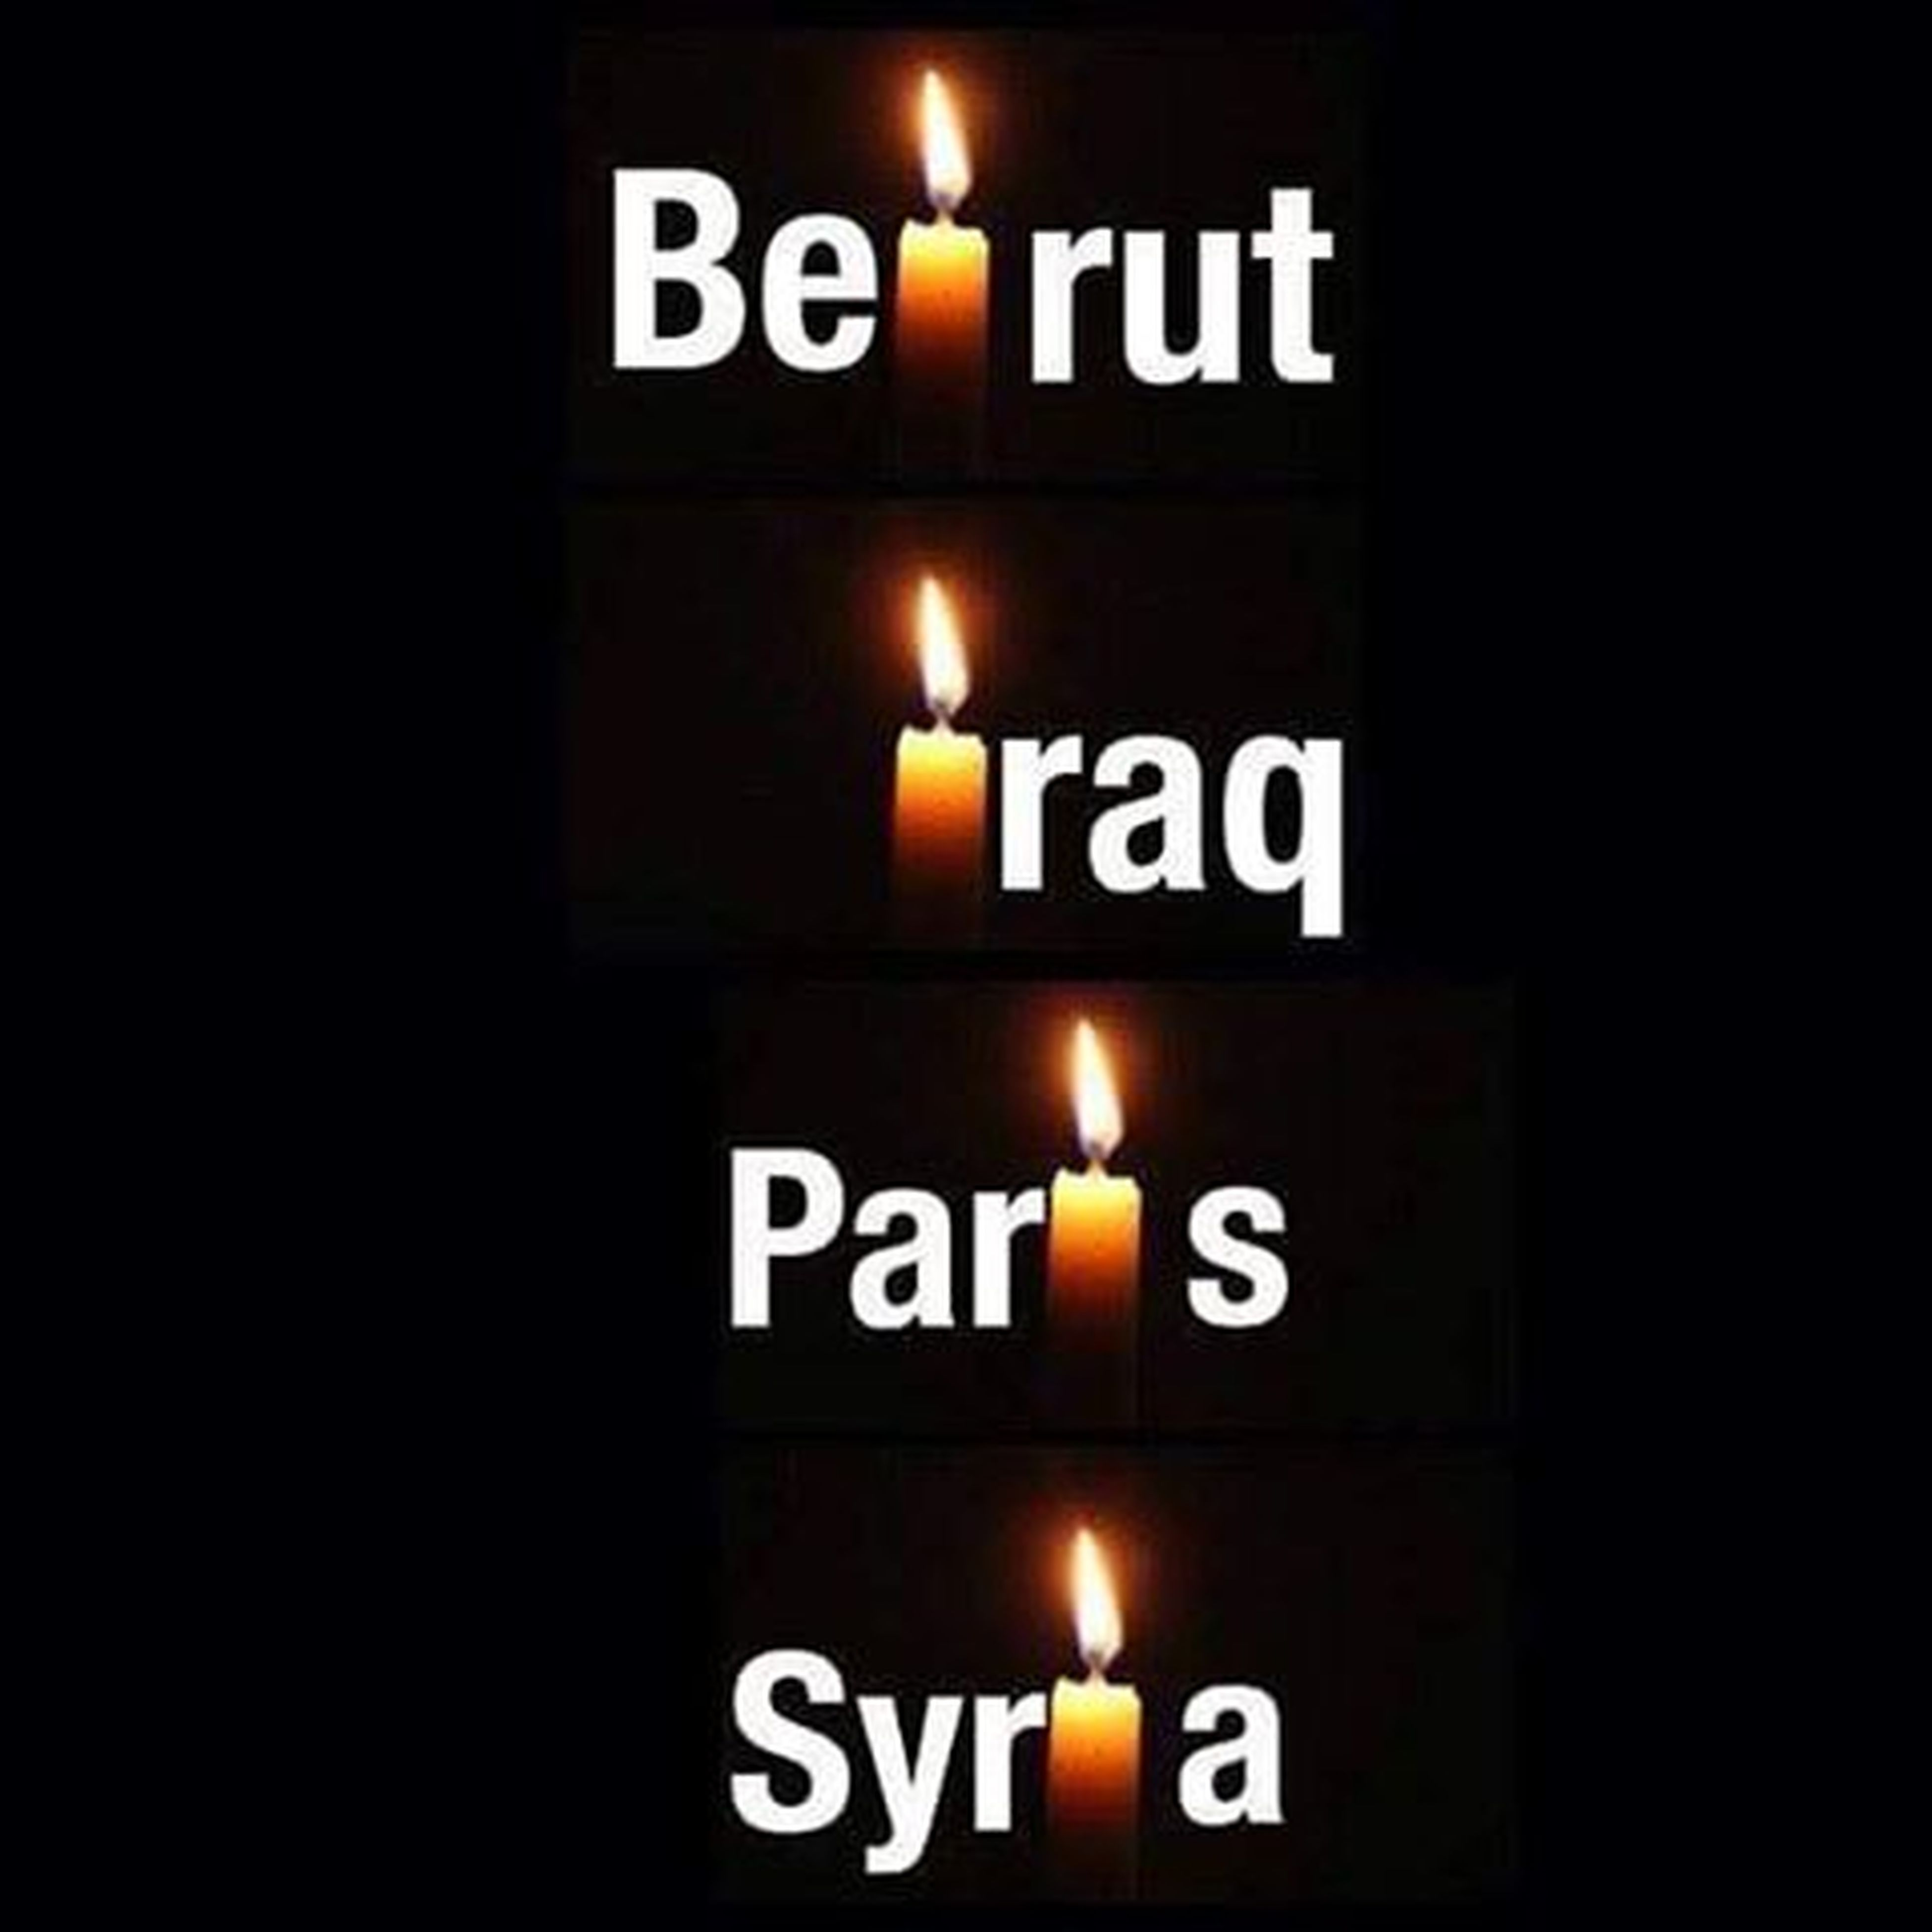 To the sprits that passed a way today and everyday in Beirut Iraq Paris Syria  may your souls rest in peace Pryforparis Pryforiraq Pryforbeirut Pryforsyria 🙏🏻